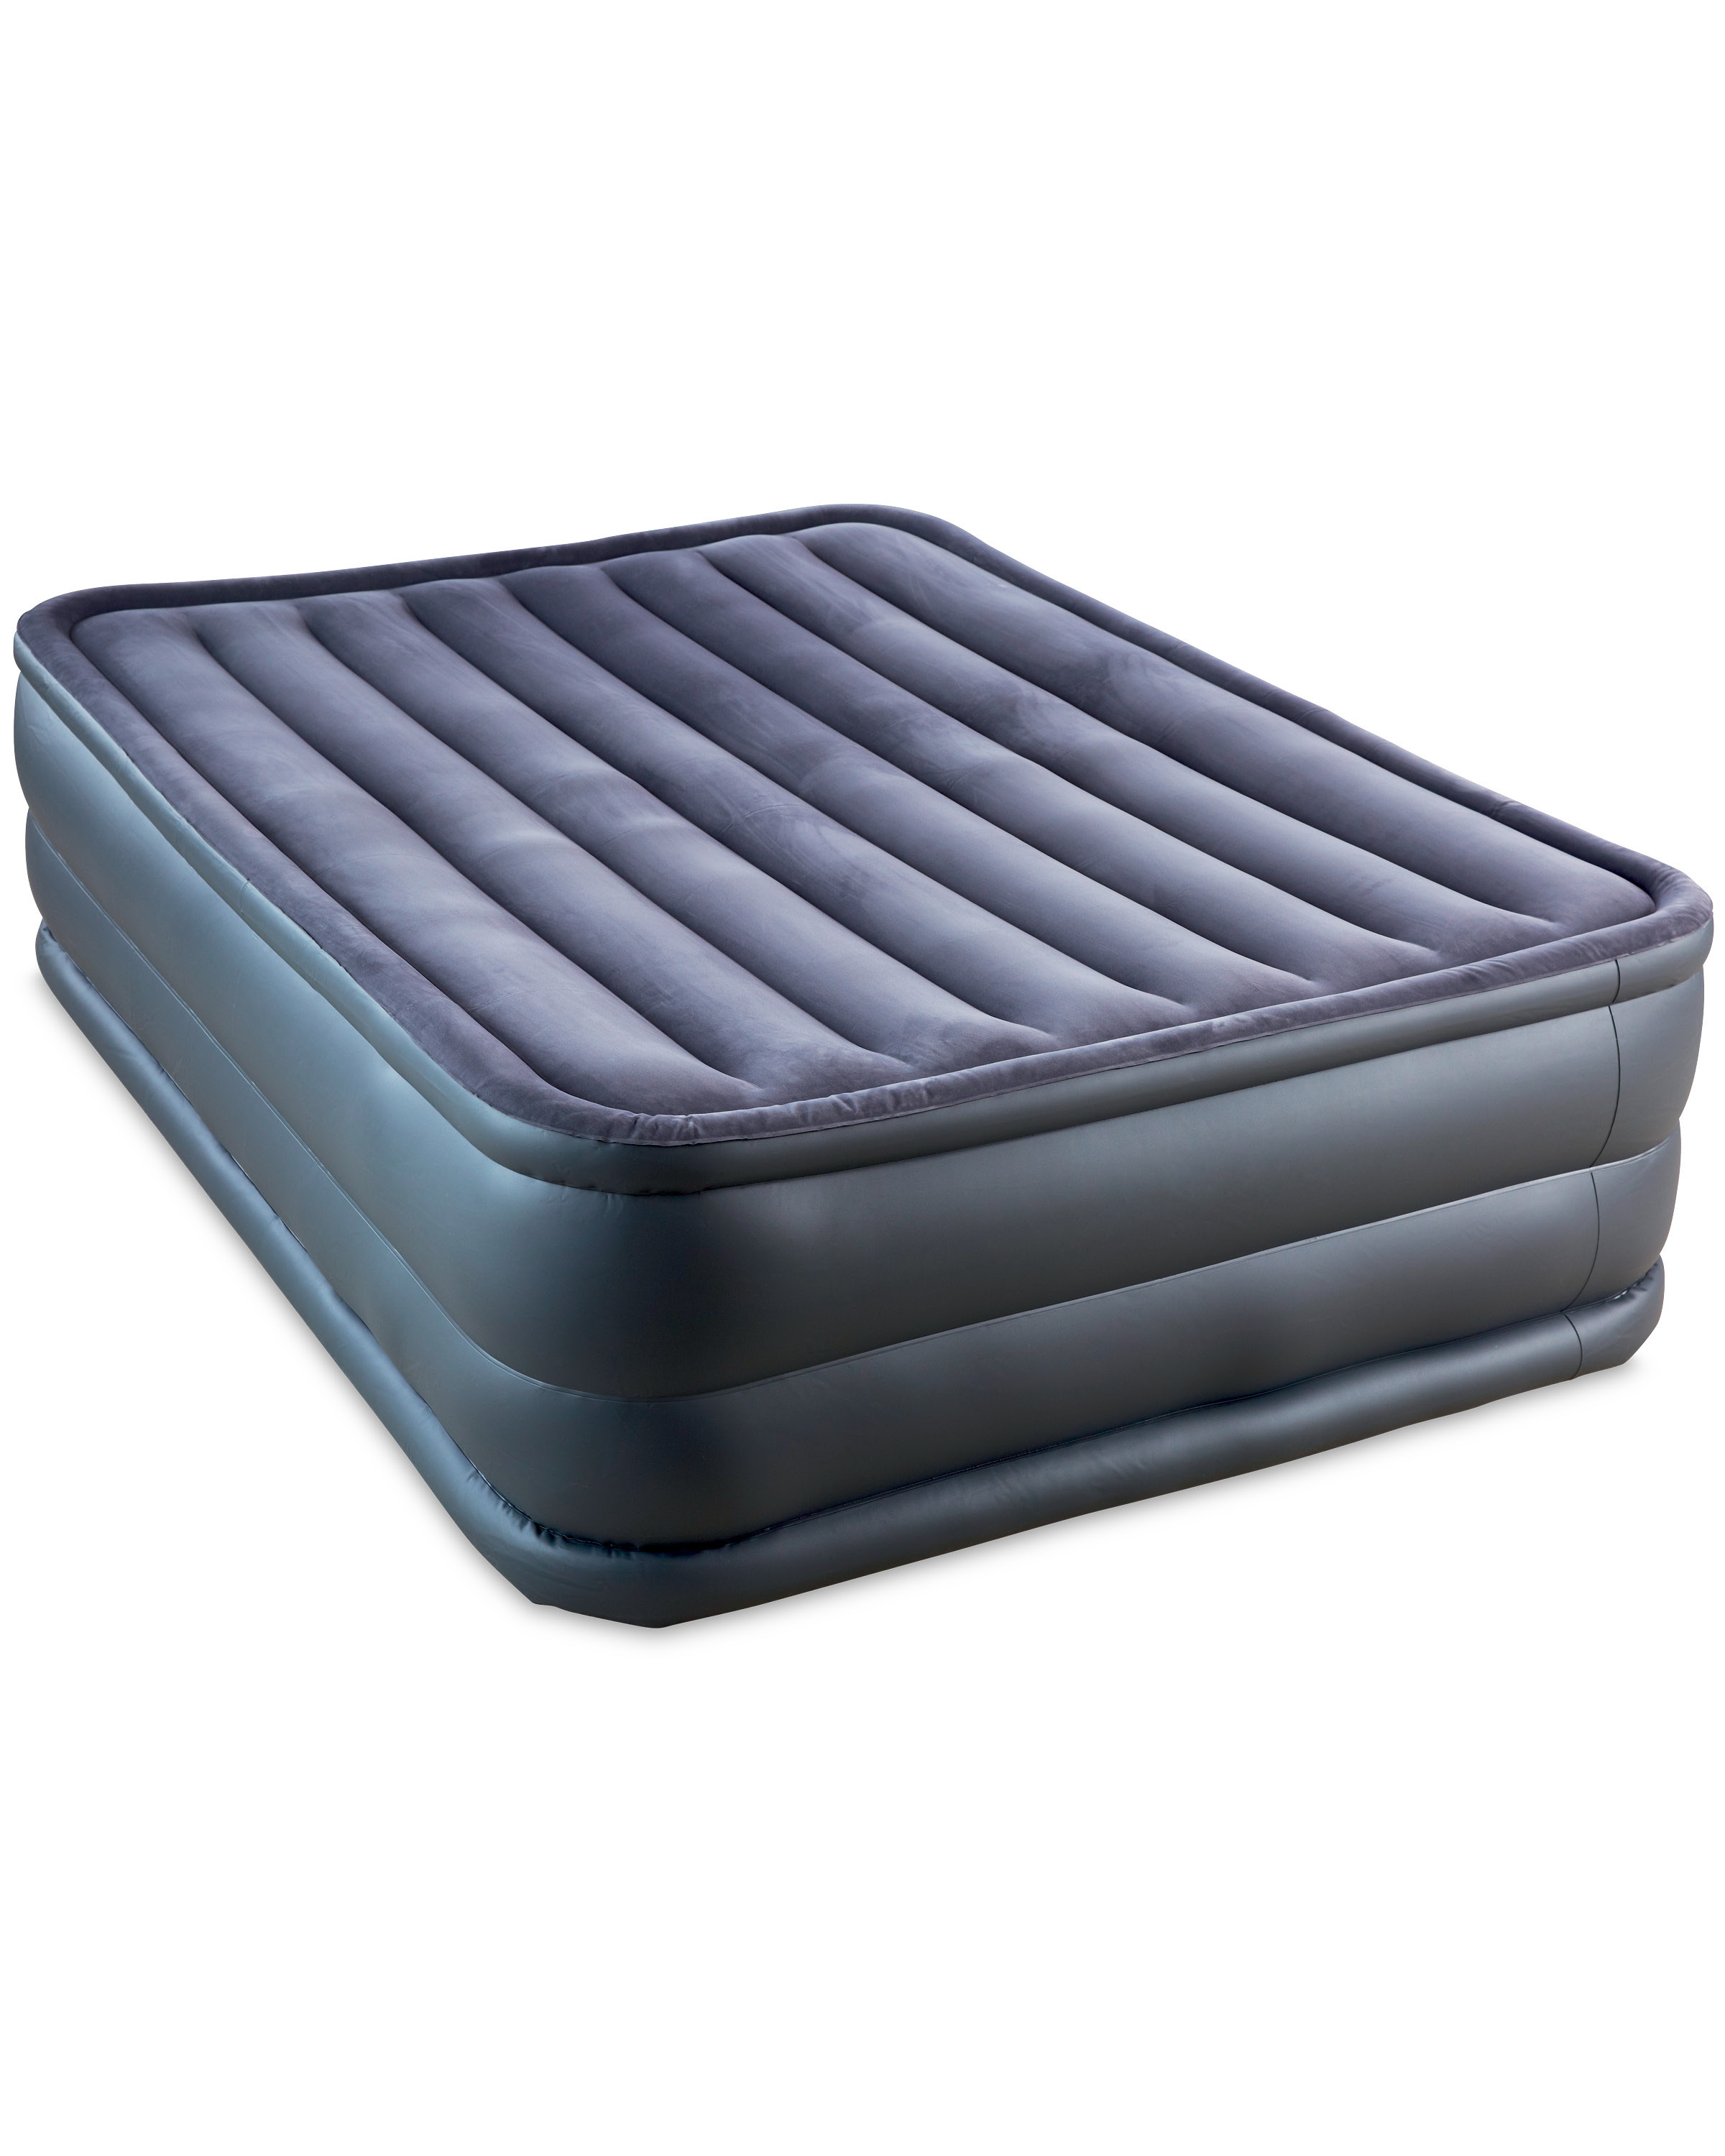 Deluxe Air Bed With Pump